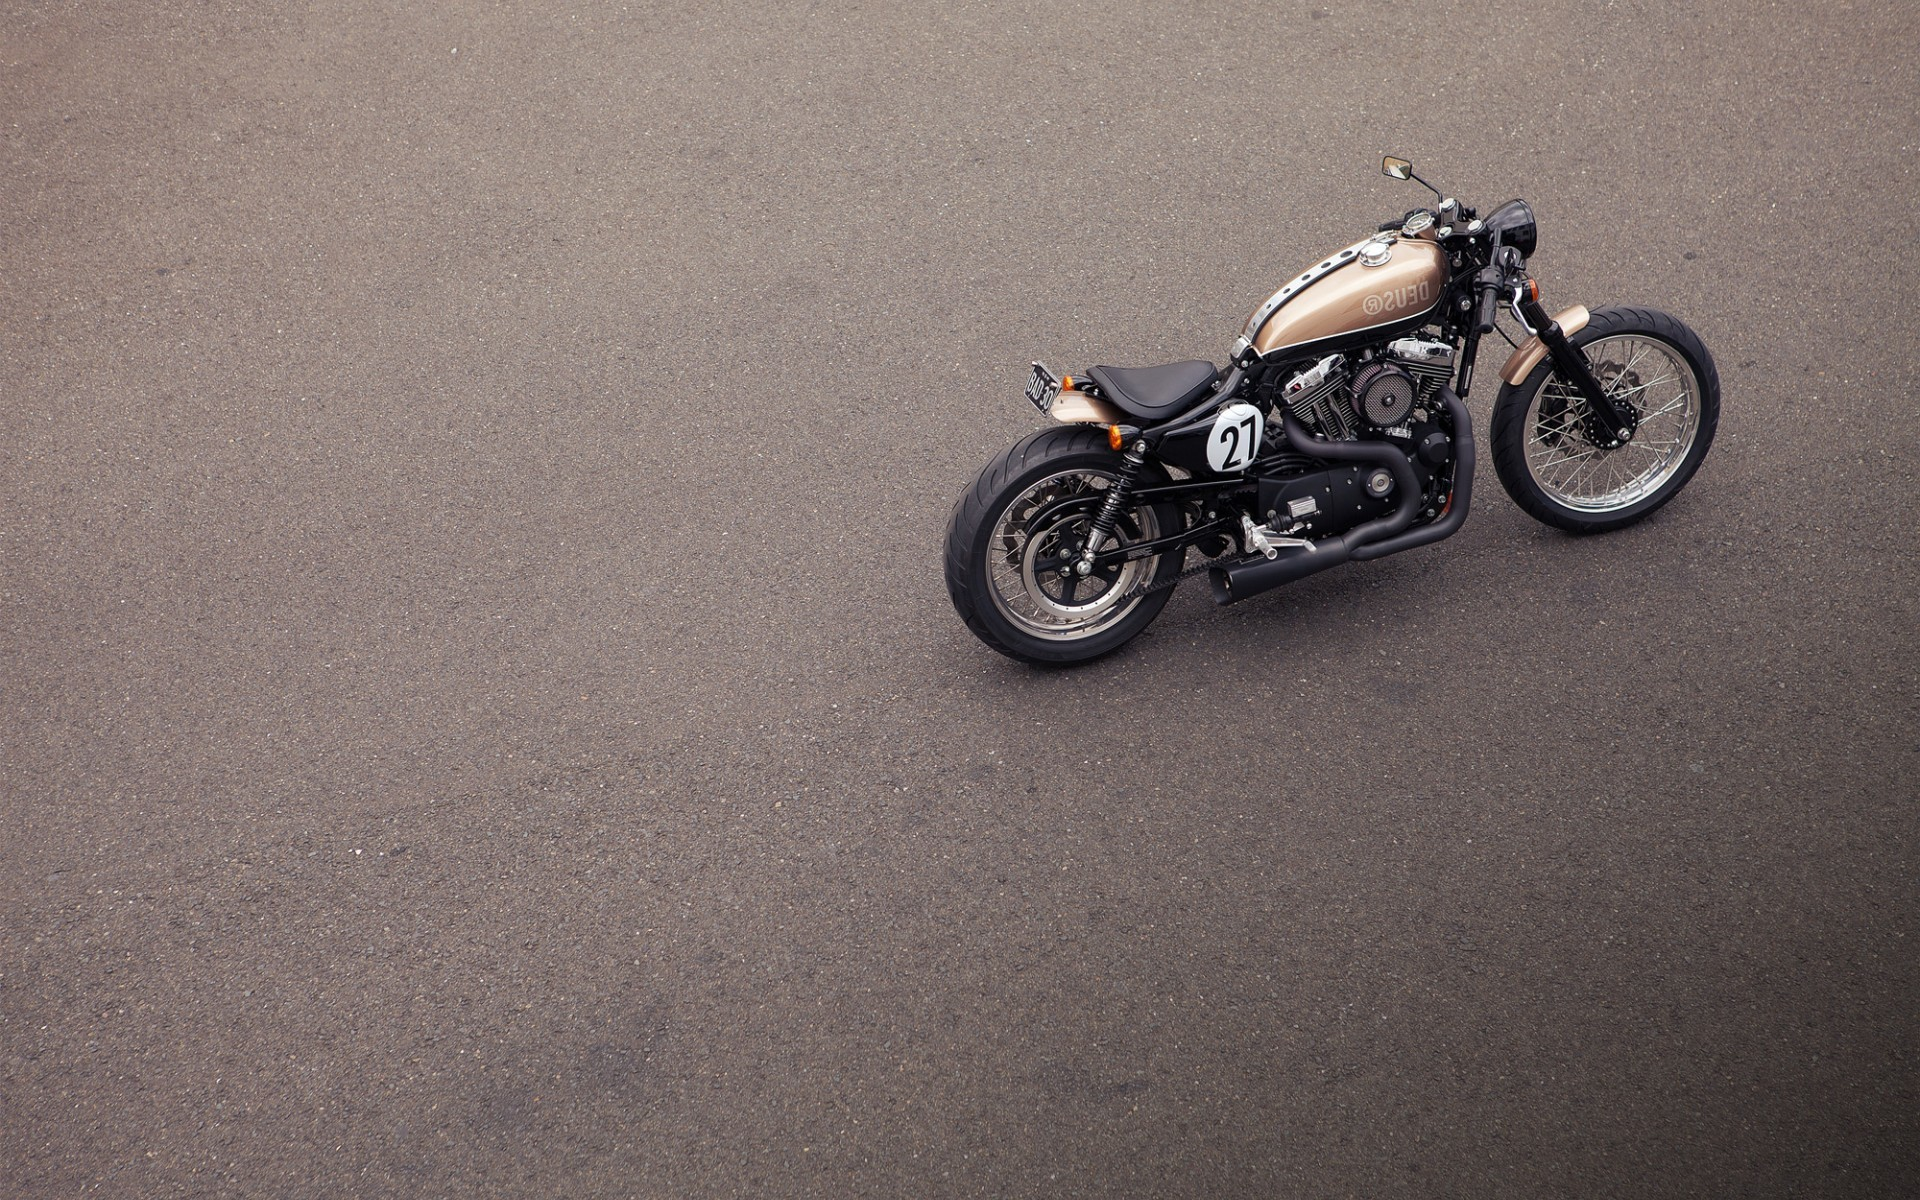 62+ Hd Bobber Wallpapers